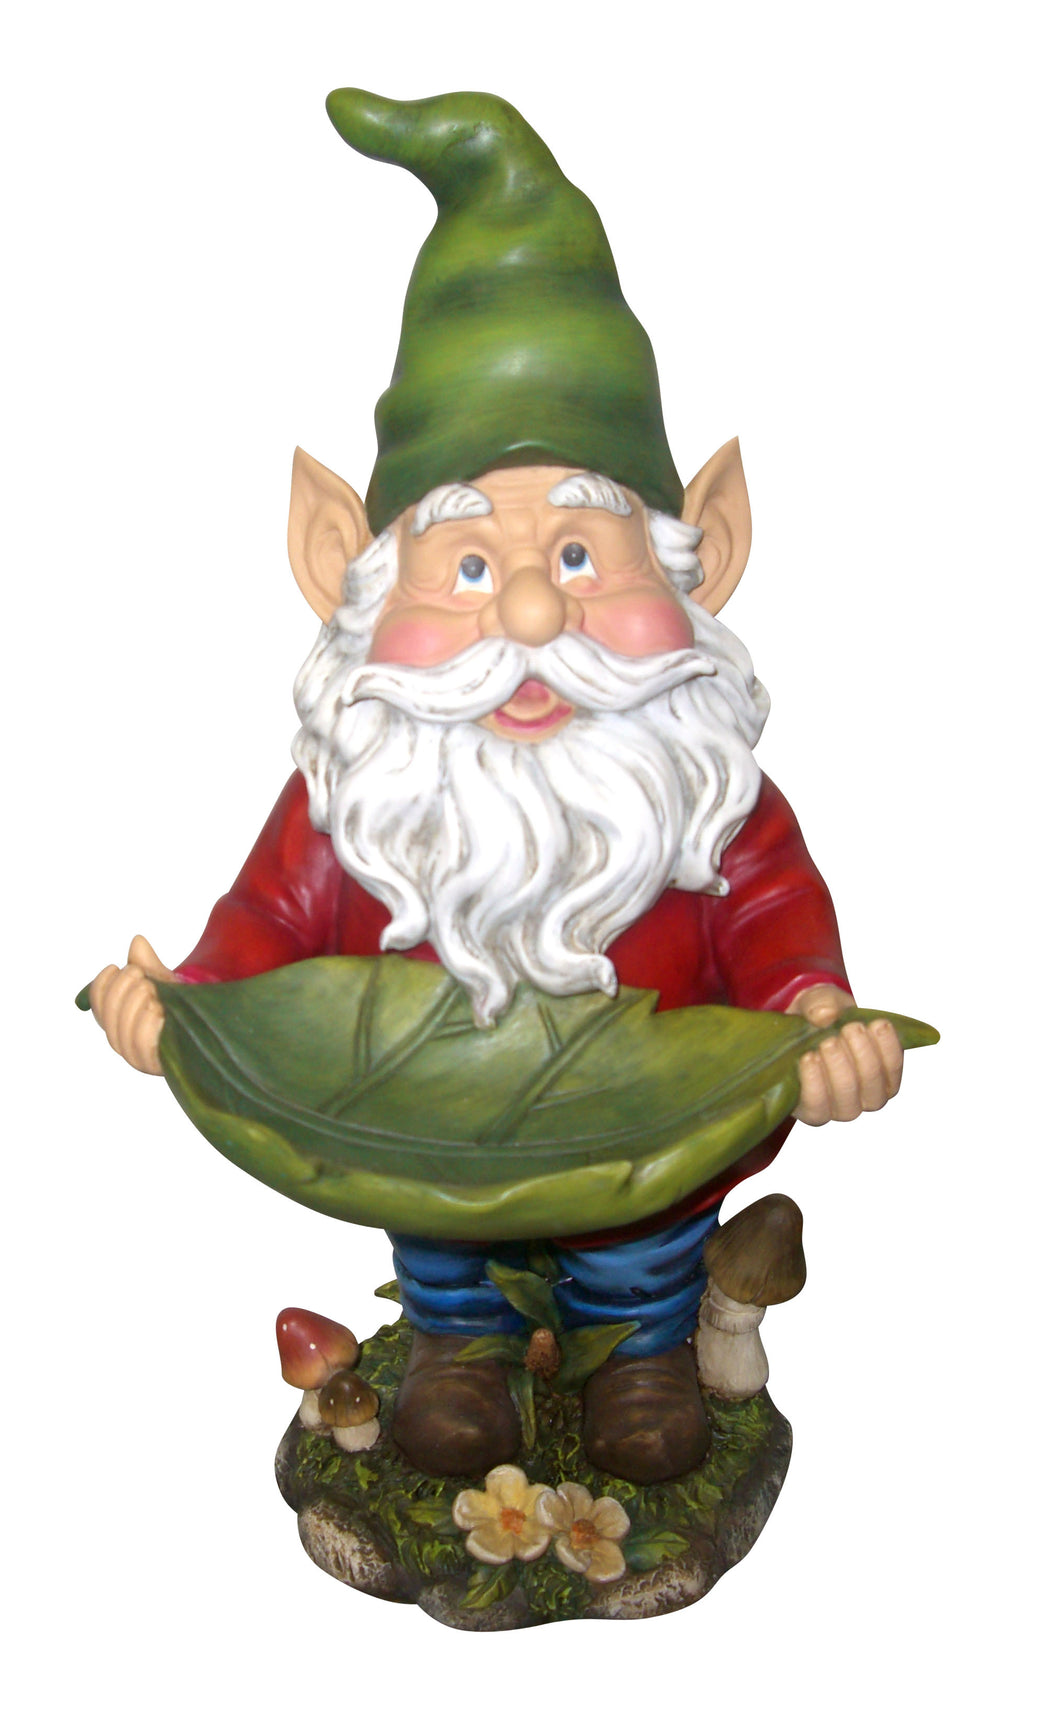 17 Inch Gnome Holding Leaf Statuary